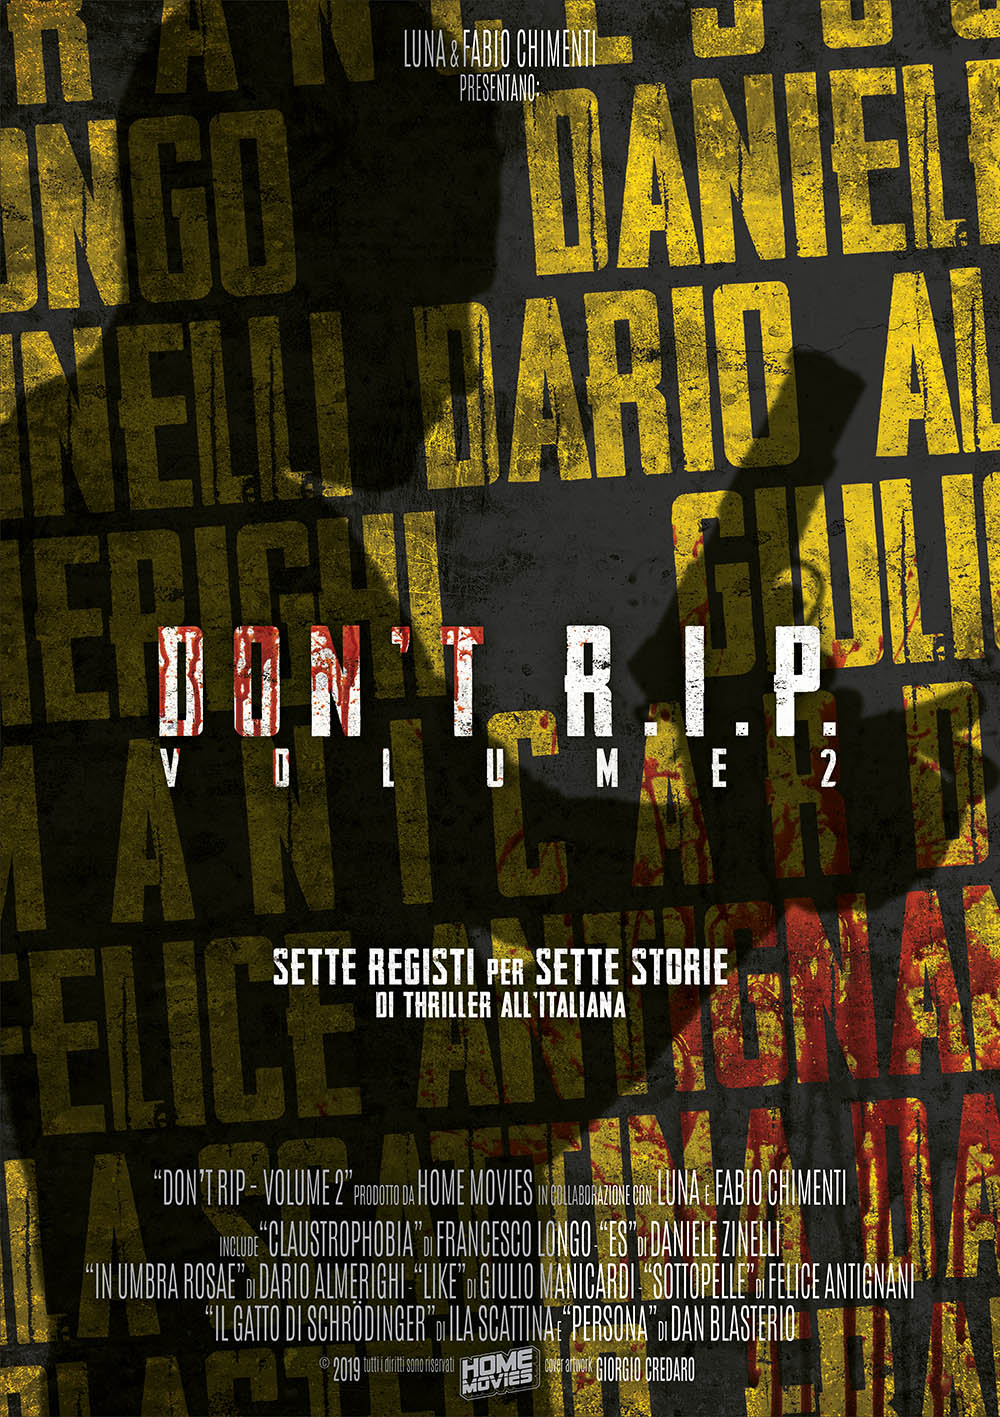 DON'T R.I.P. VOLUME 2 (DVD)